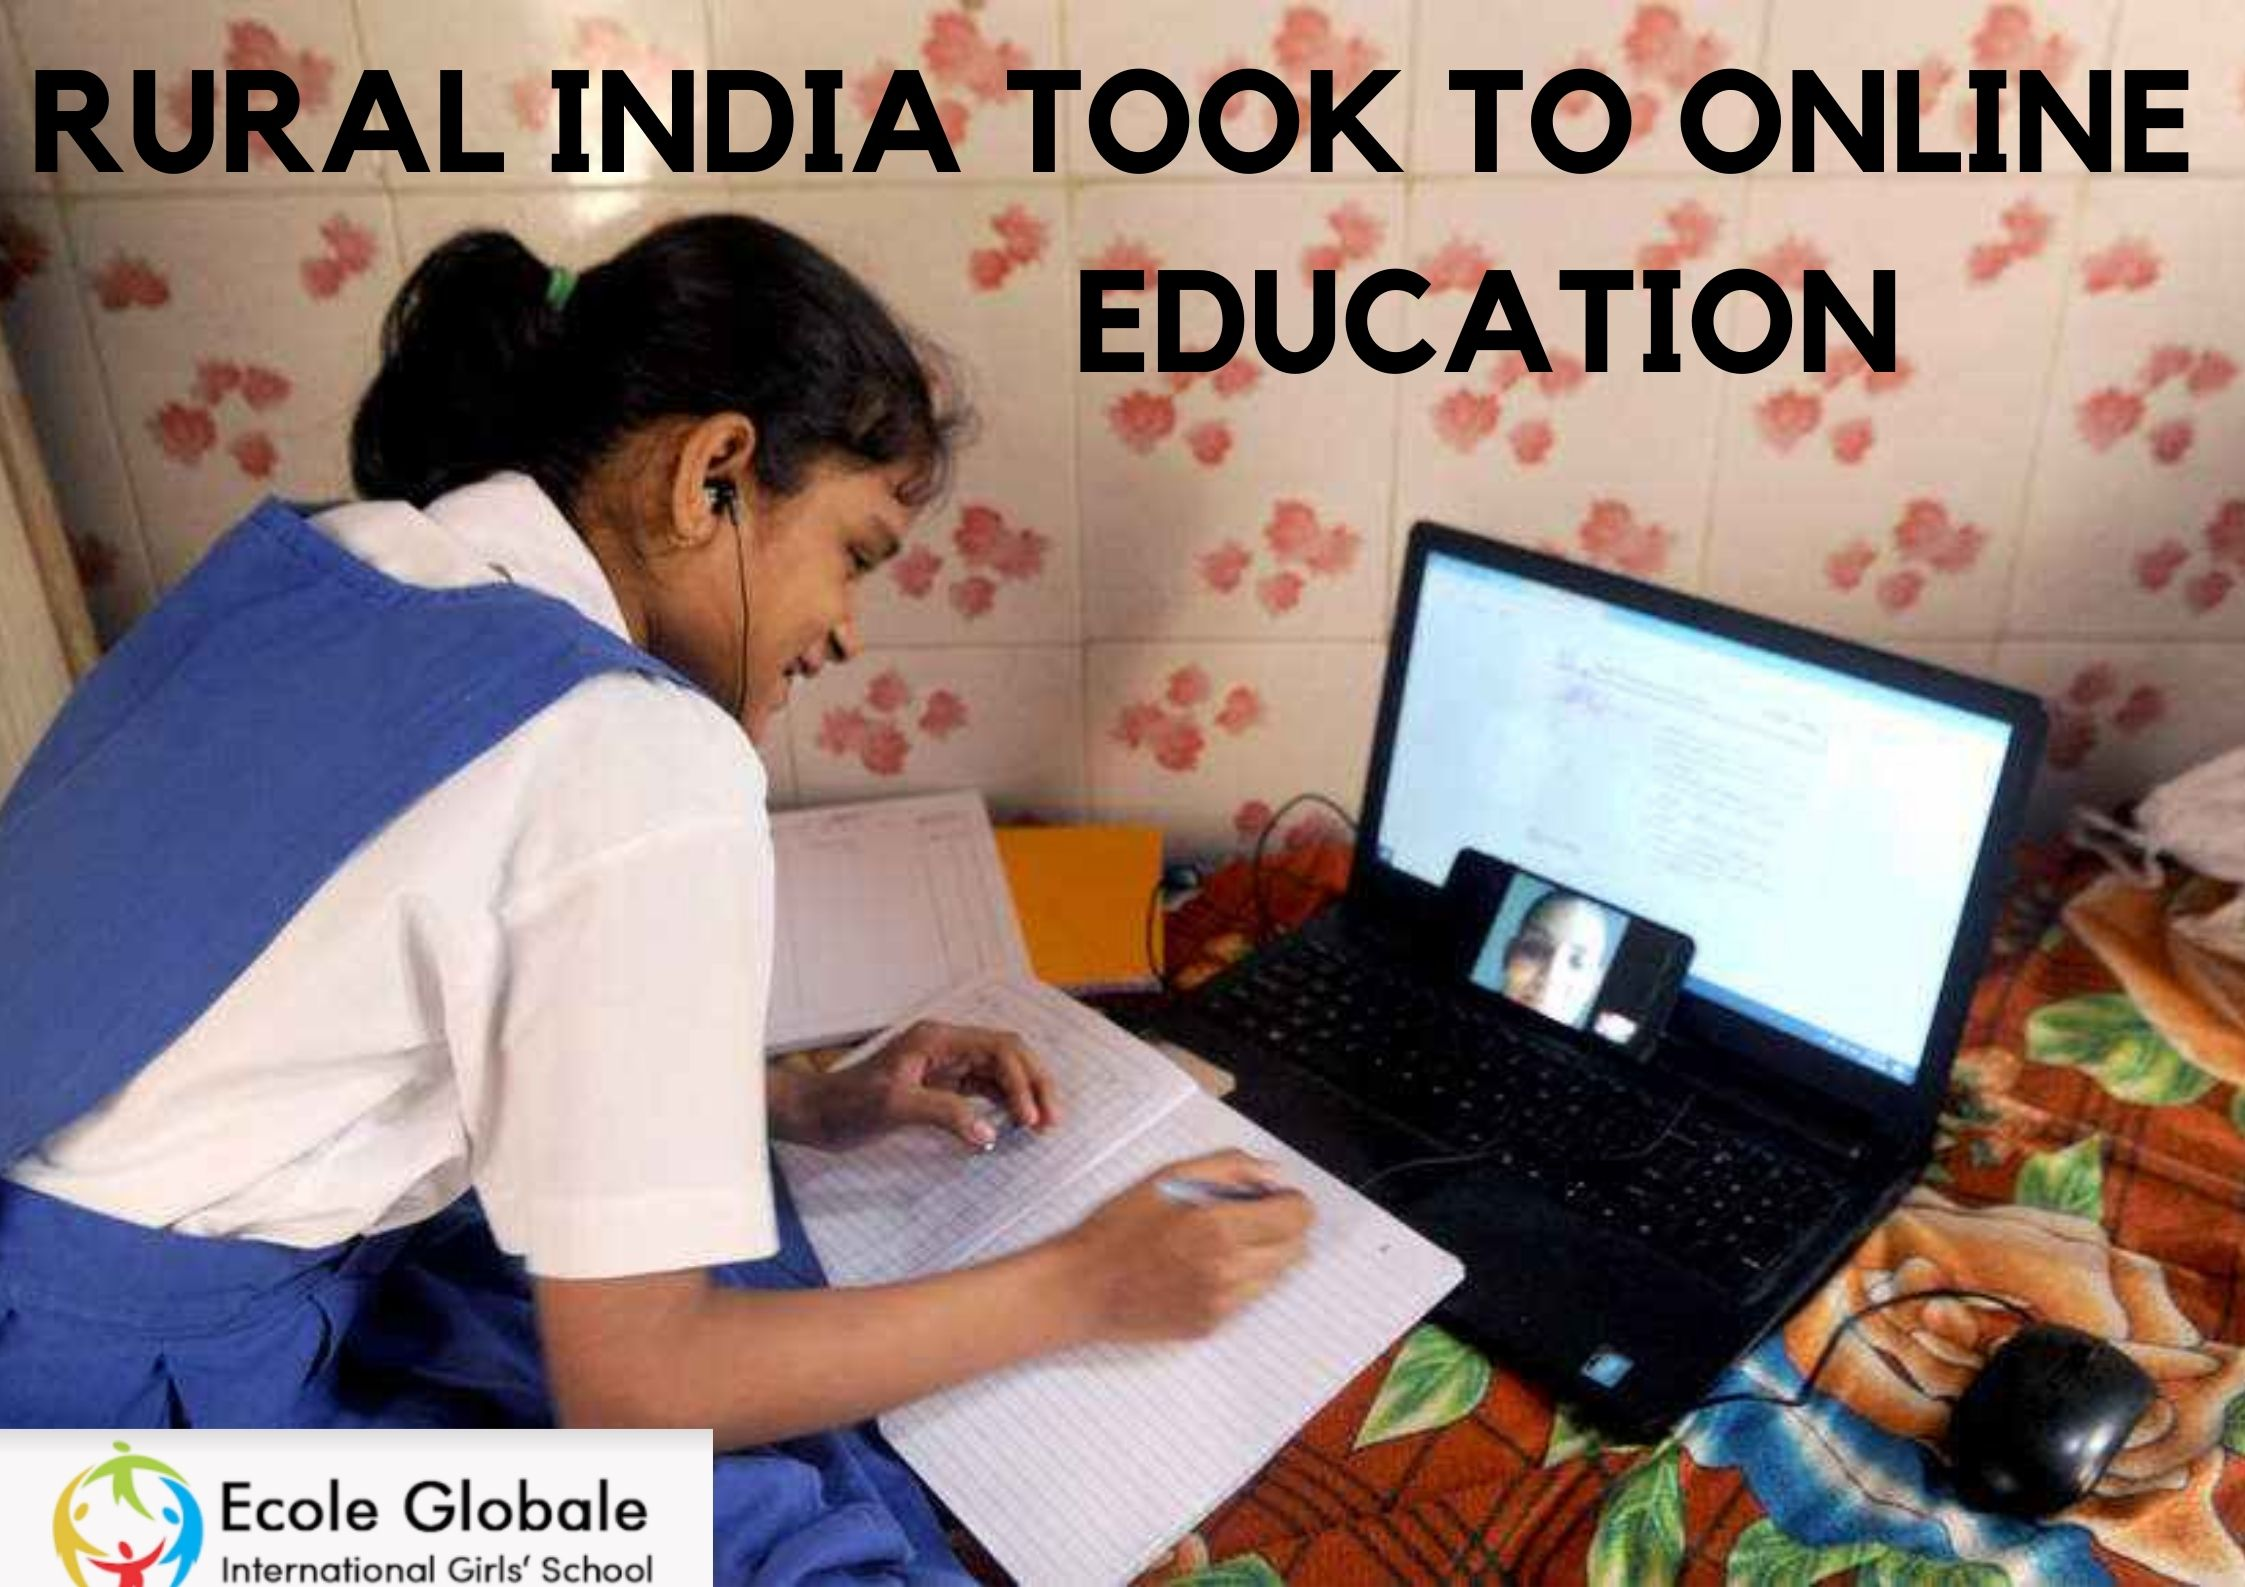 How Did Rural India Take To Online Education In India?